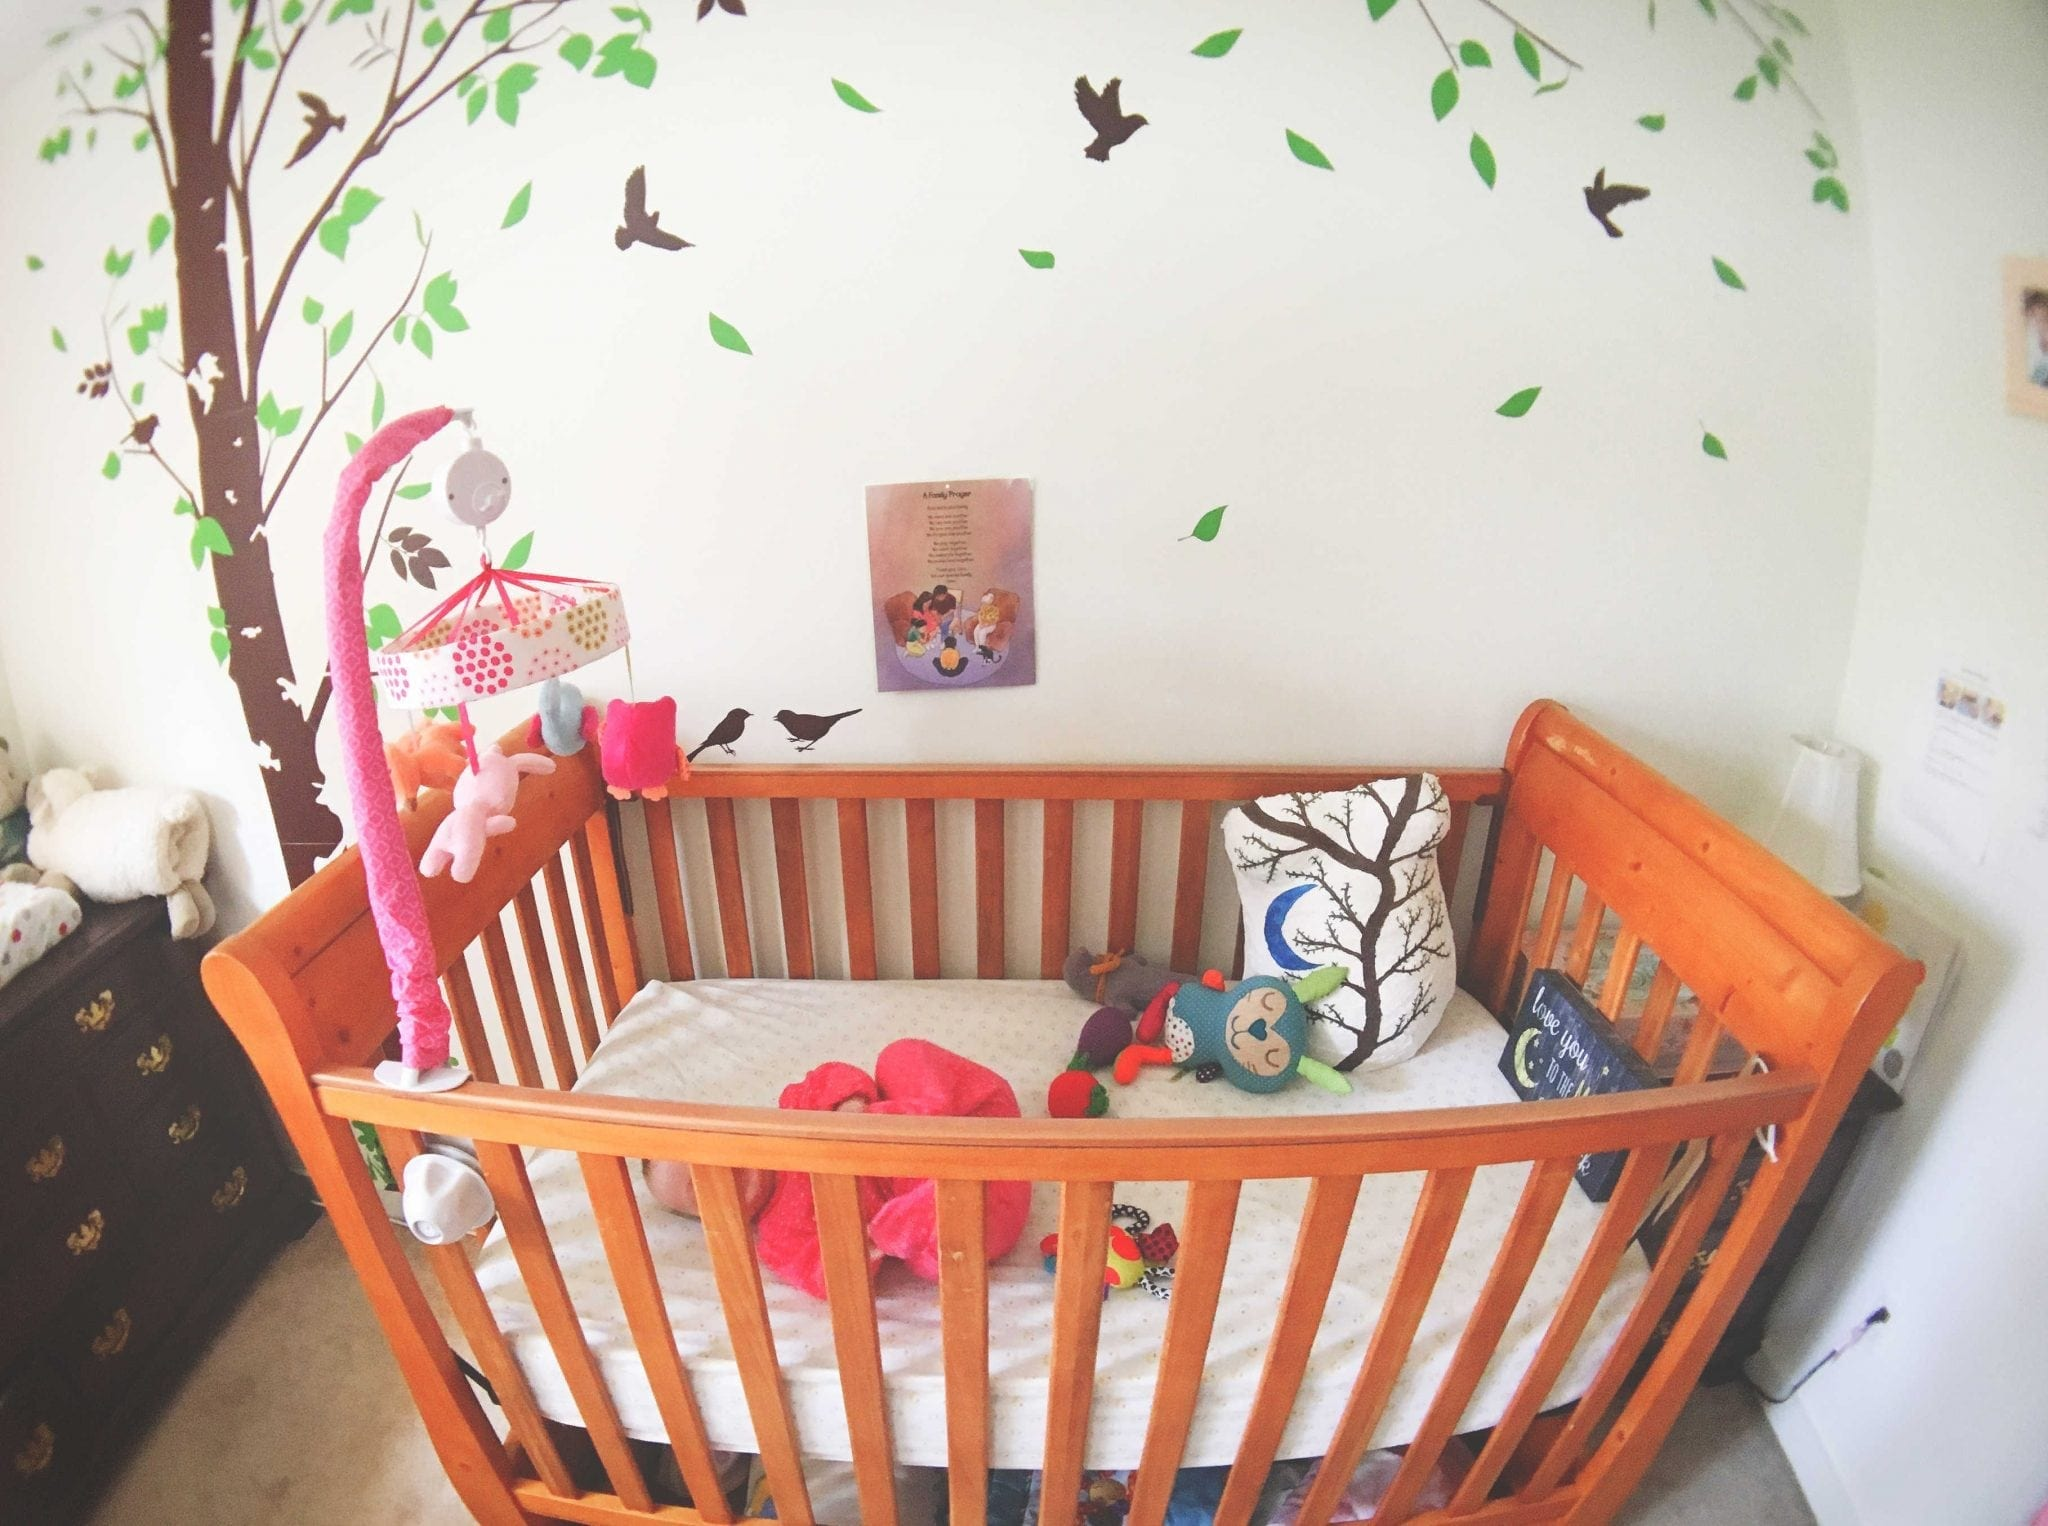 Luna's Secondhand Crib & Dressers - usually big ticket items